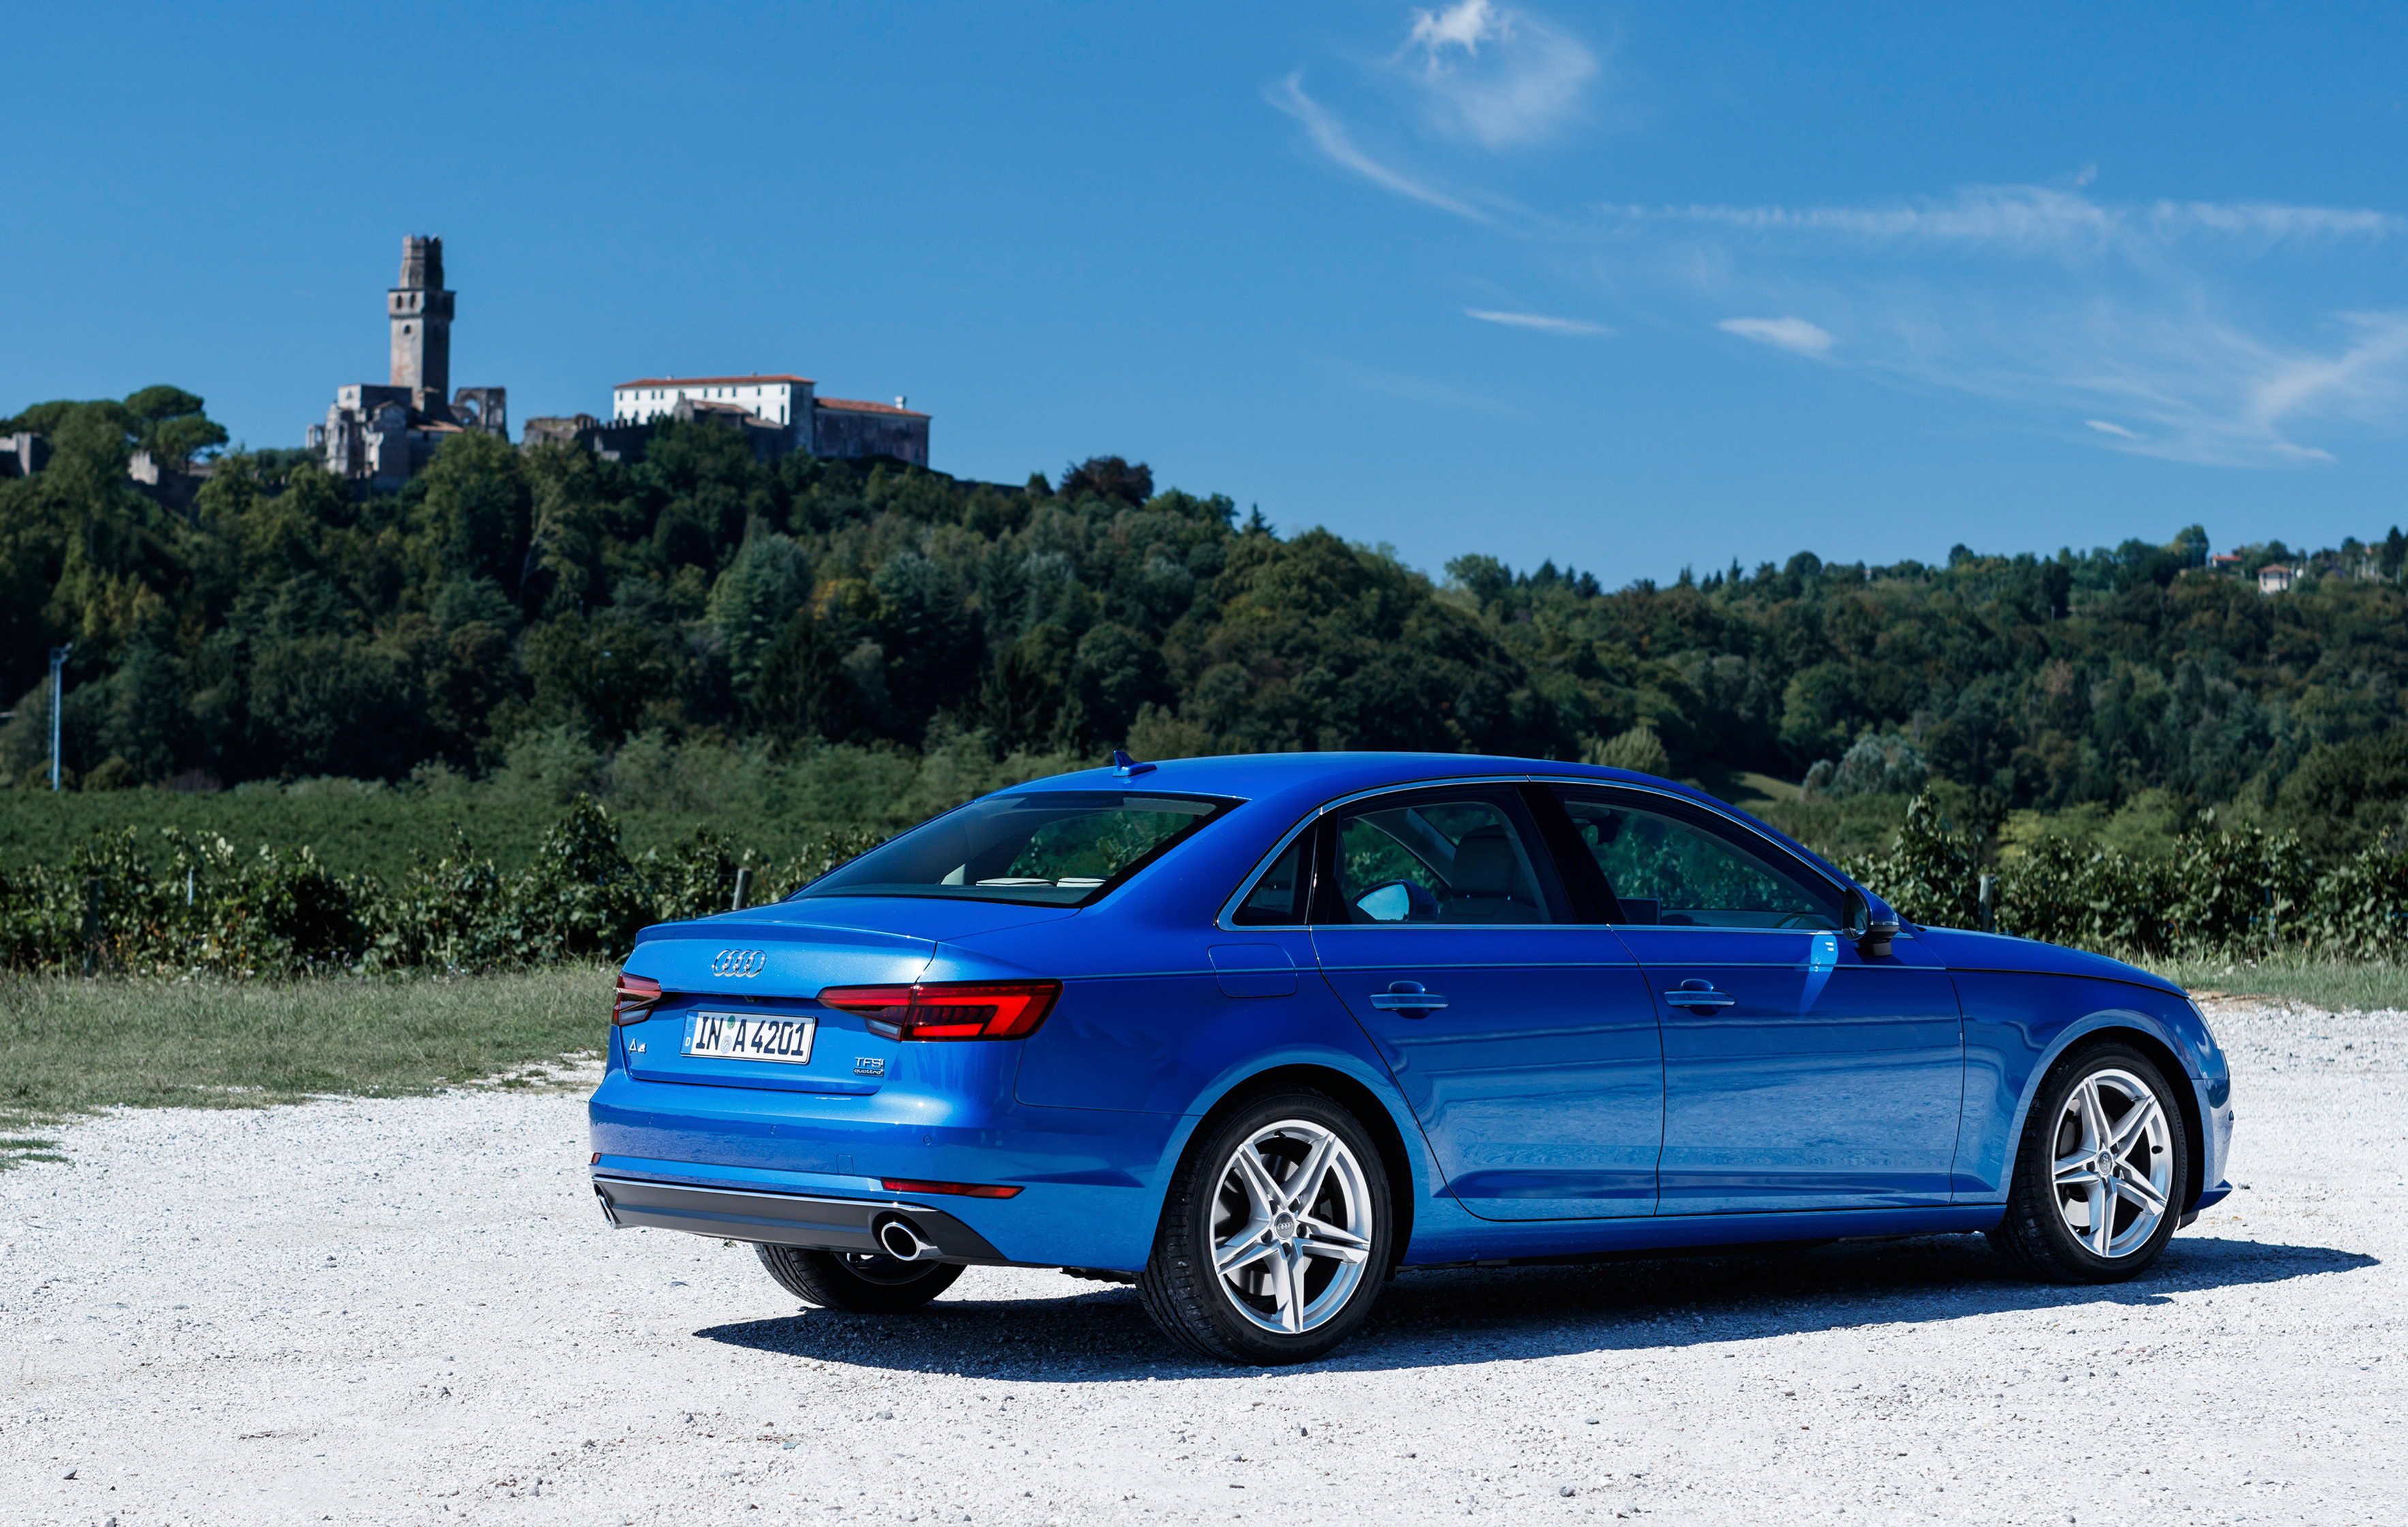 Gallery Audi A4 B9 On Location In Venice Italy Image 384235